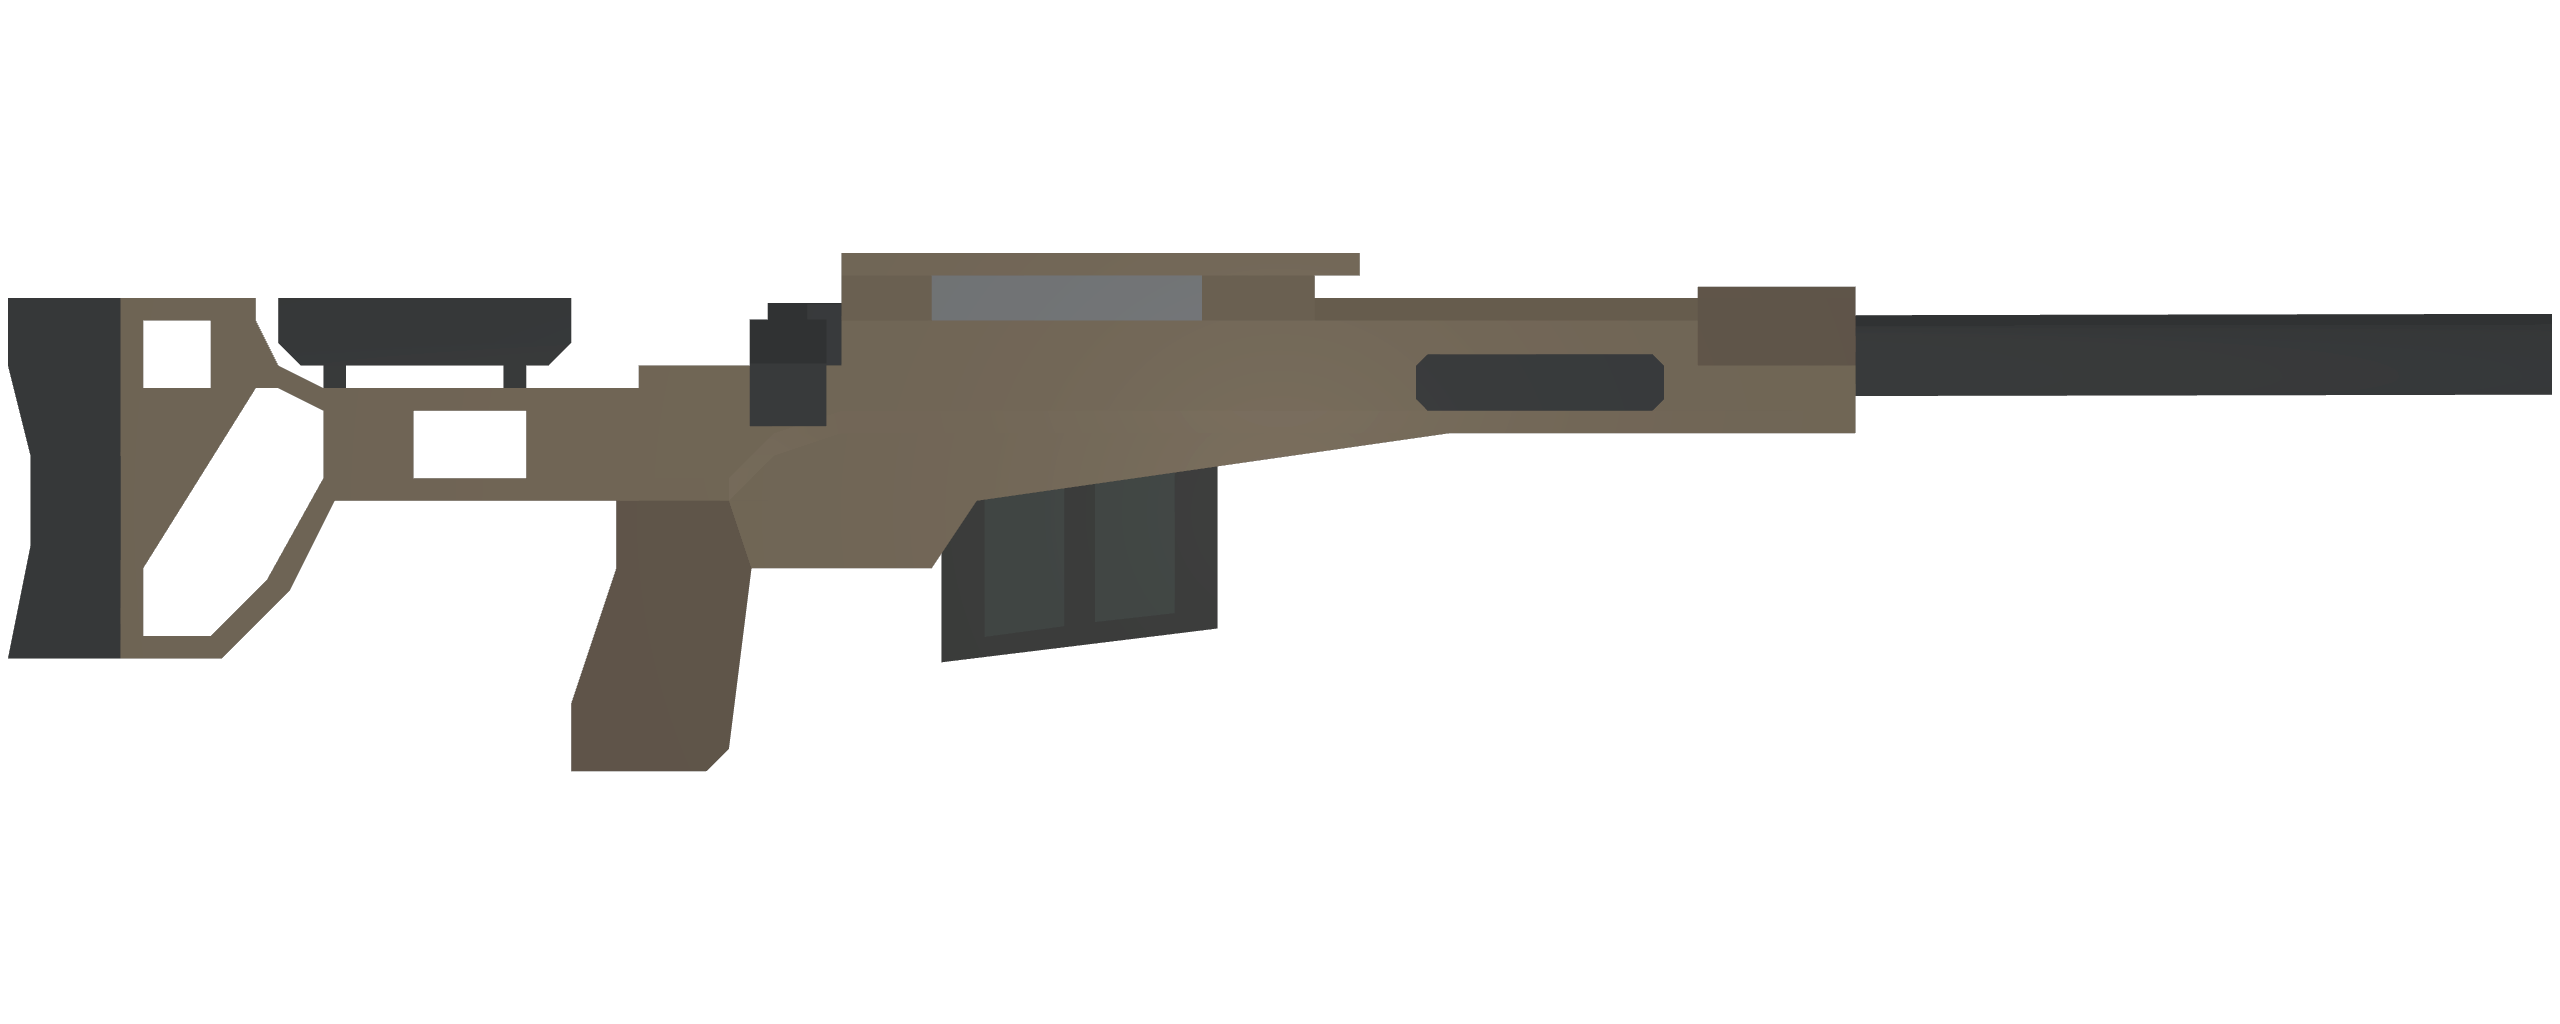 Unturned - All Weapons ID's for Uncreated Warfare Mods - USA Weapons - DDF5427